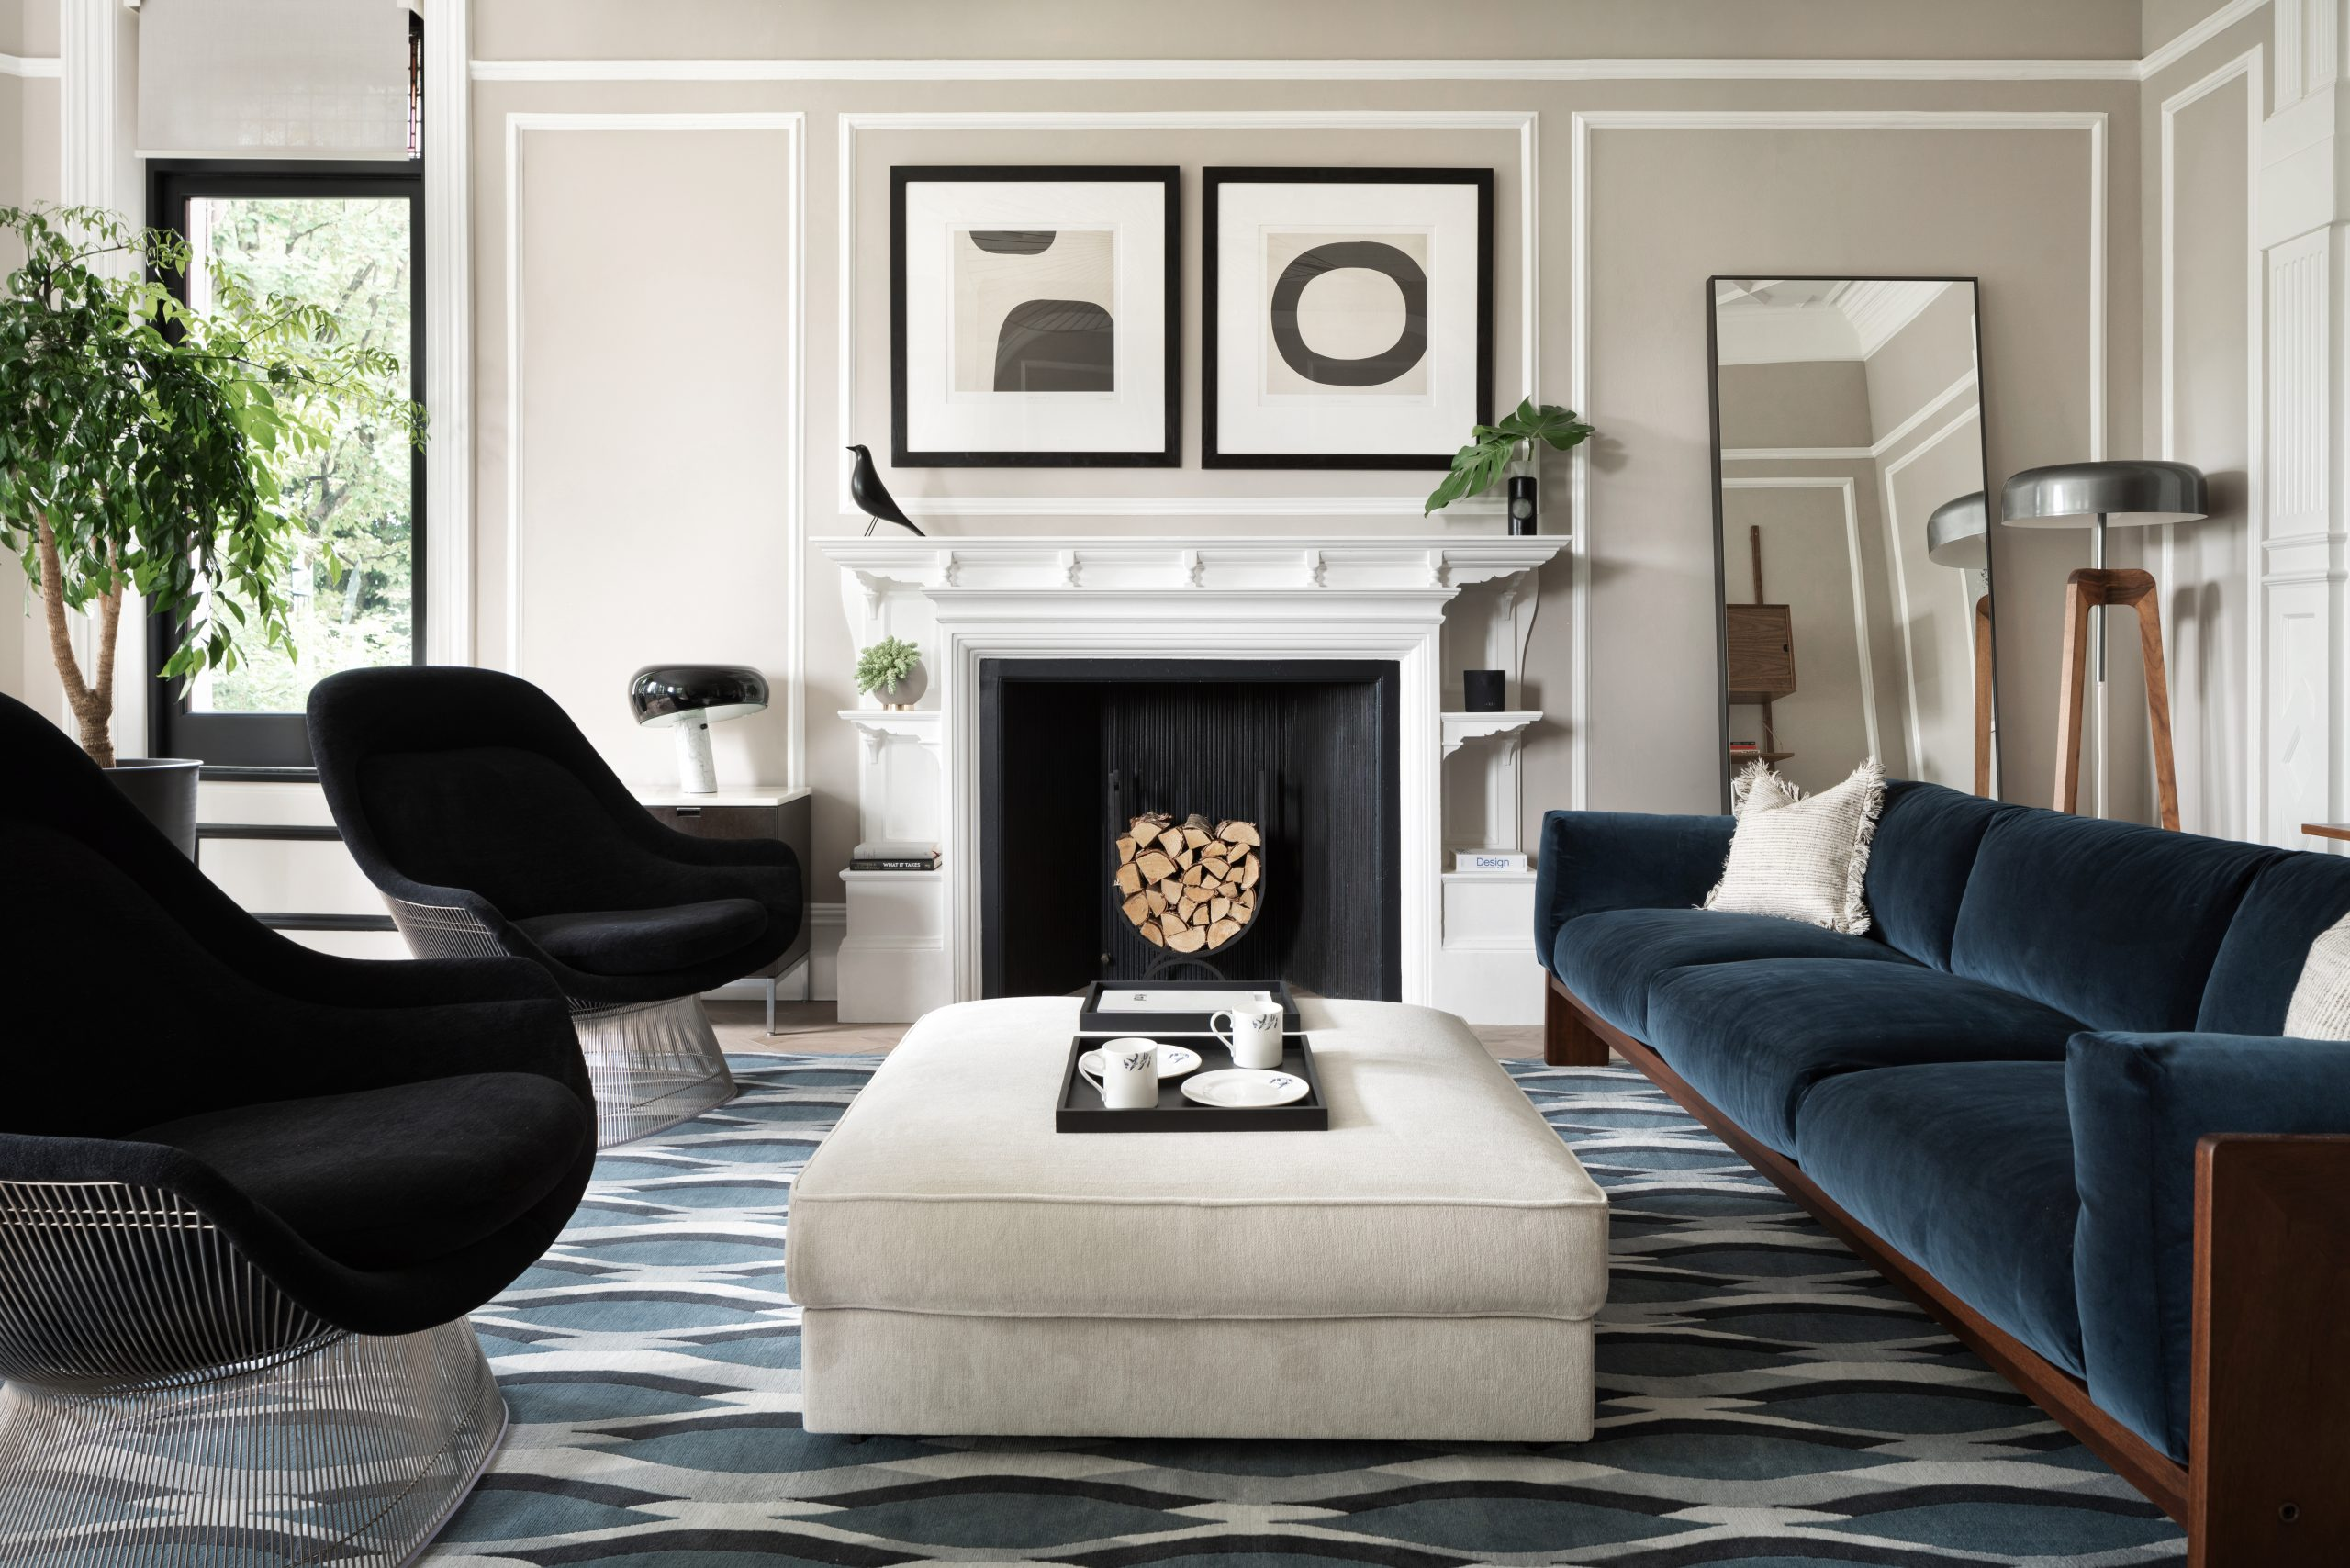 NW3 Interiors is an interior design studio in North London. We work on projects of all sizes & budgets in Hampstead, Primrose Hill, Camden & Belsize Park.